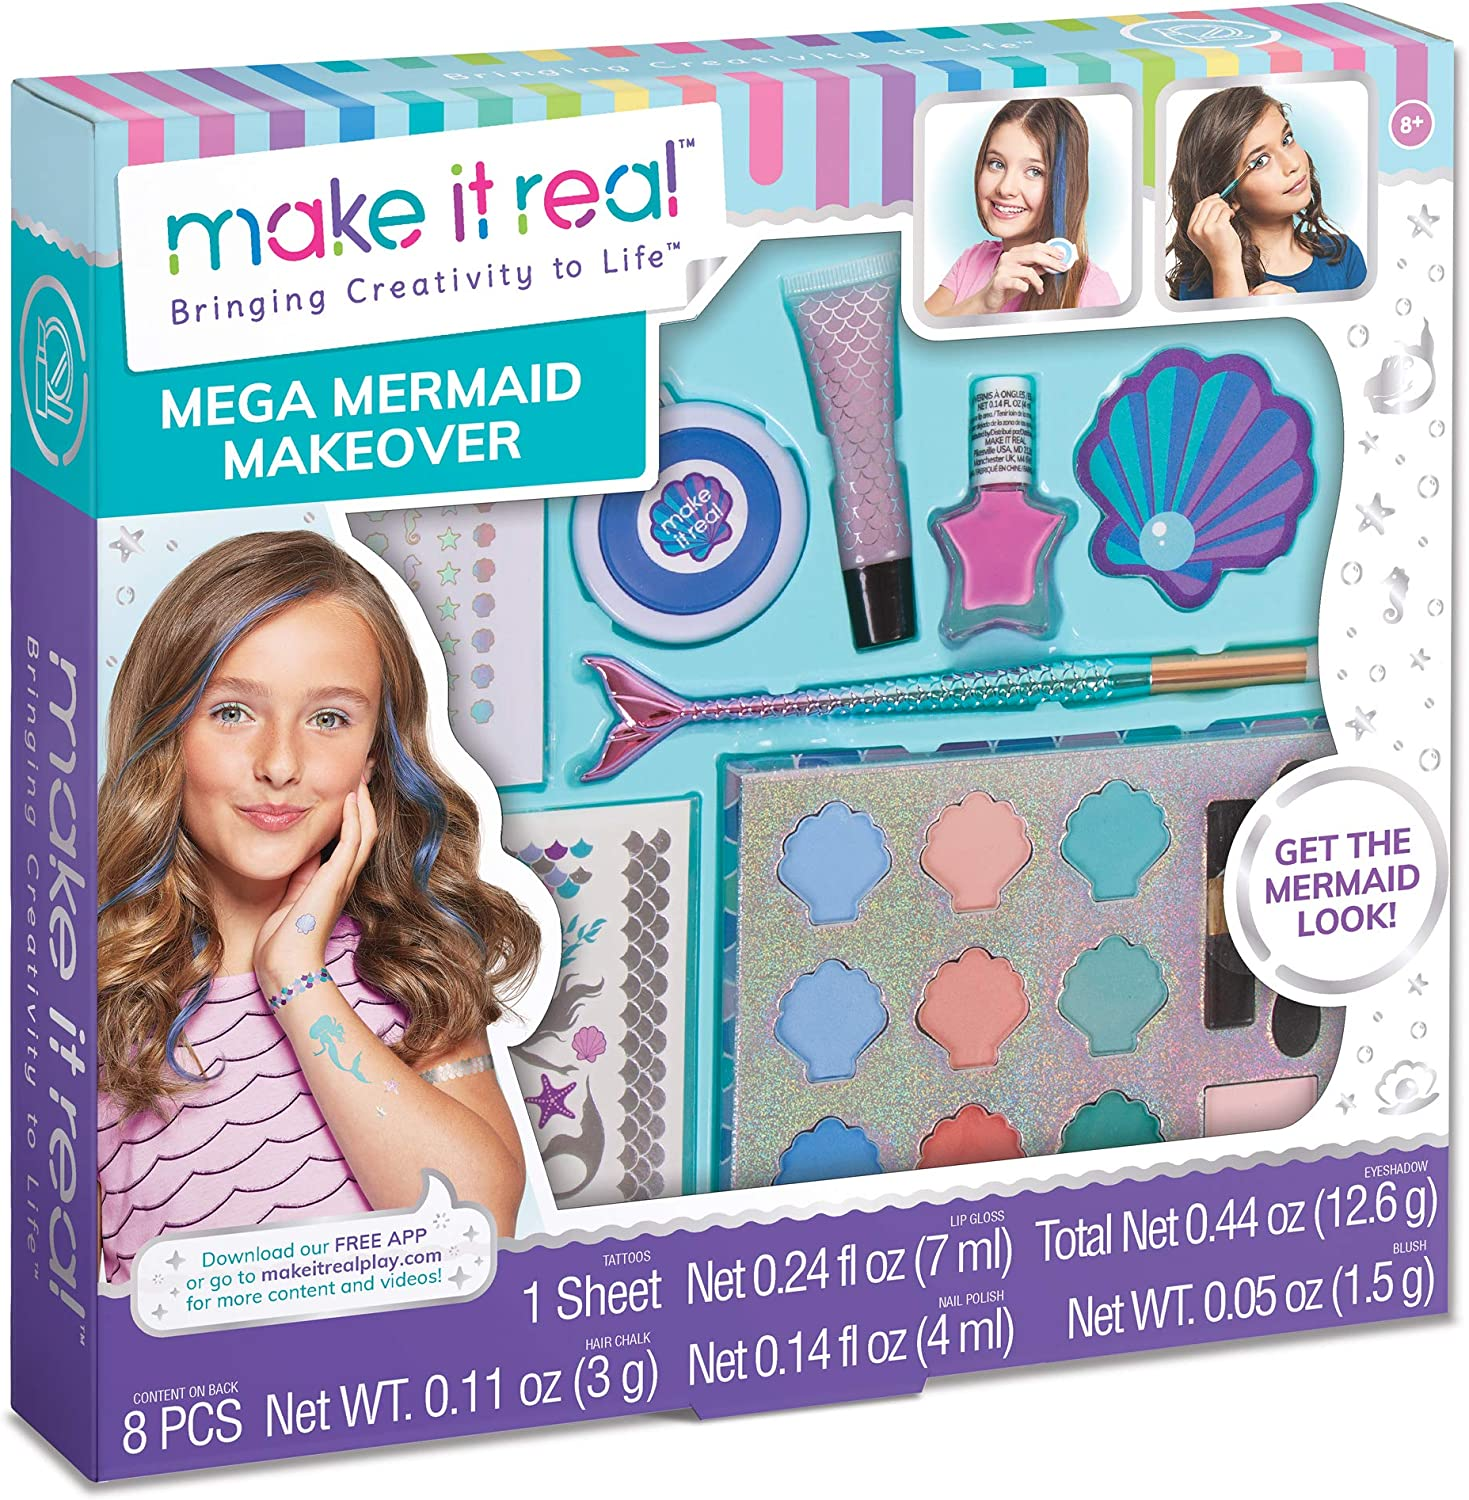 Make It Real – Mega Mermaid Makeover. Mermaid Themed Girls Makeup Kit. Starter Cosmetic Set for Kids and Tweens. Includes Case, Mirror, Eye Shadow, Blush, Mermaid Brushes, Lip Gloss, Nail Polish